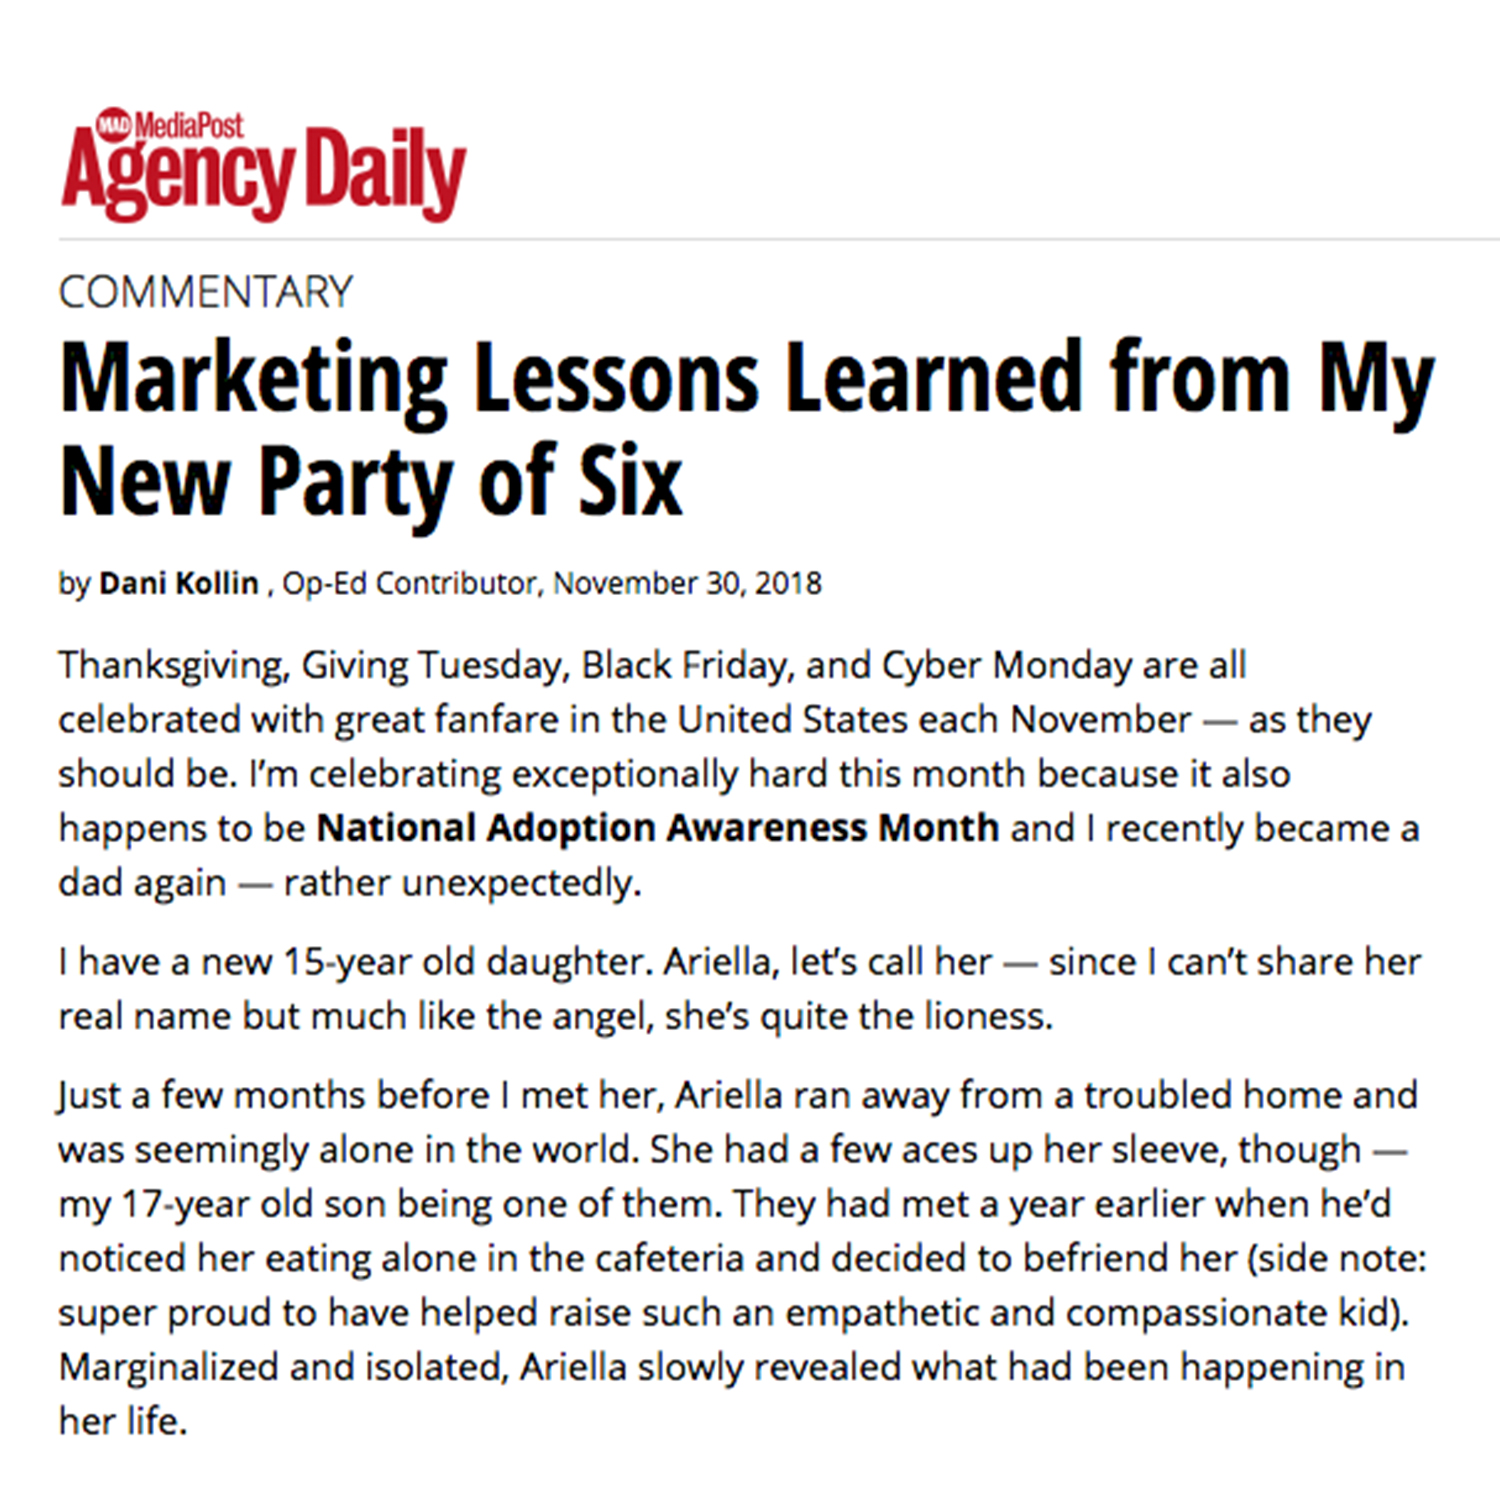 Marketing Lessons Learned from My New Party of Six